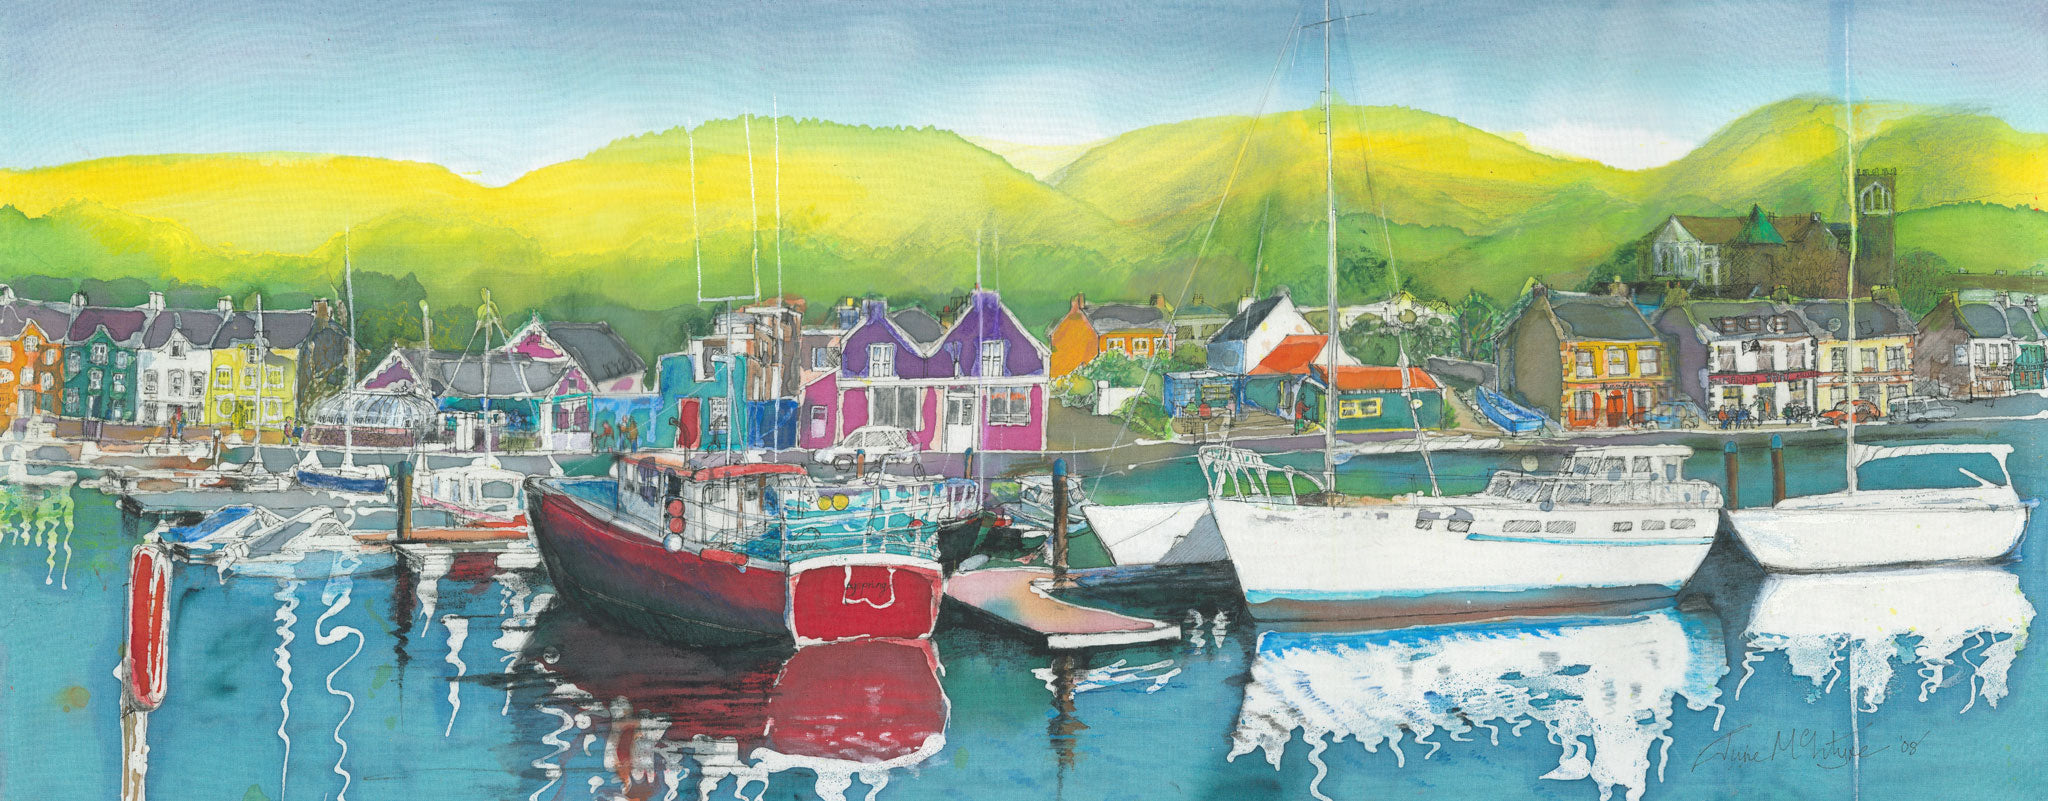 Dingle Marina III Limited Edition